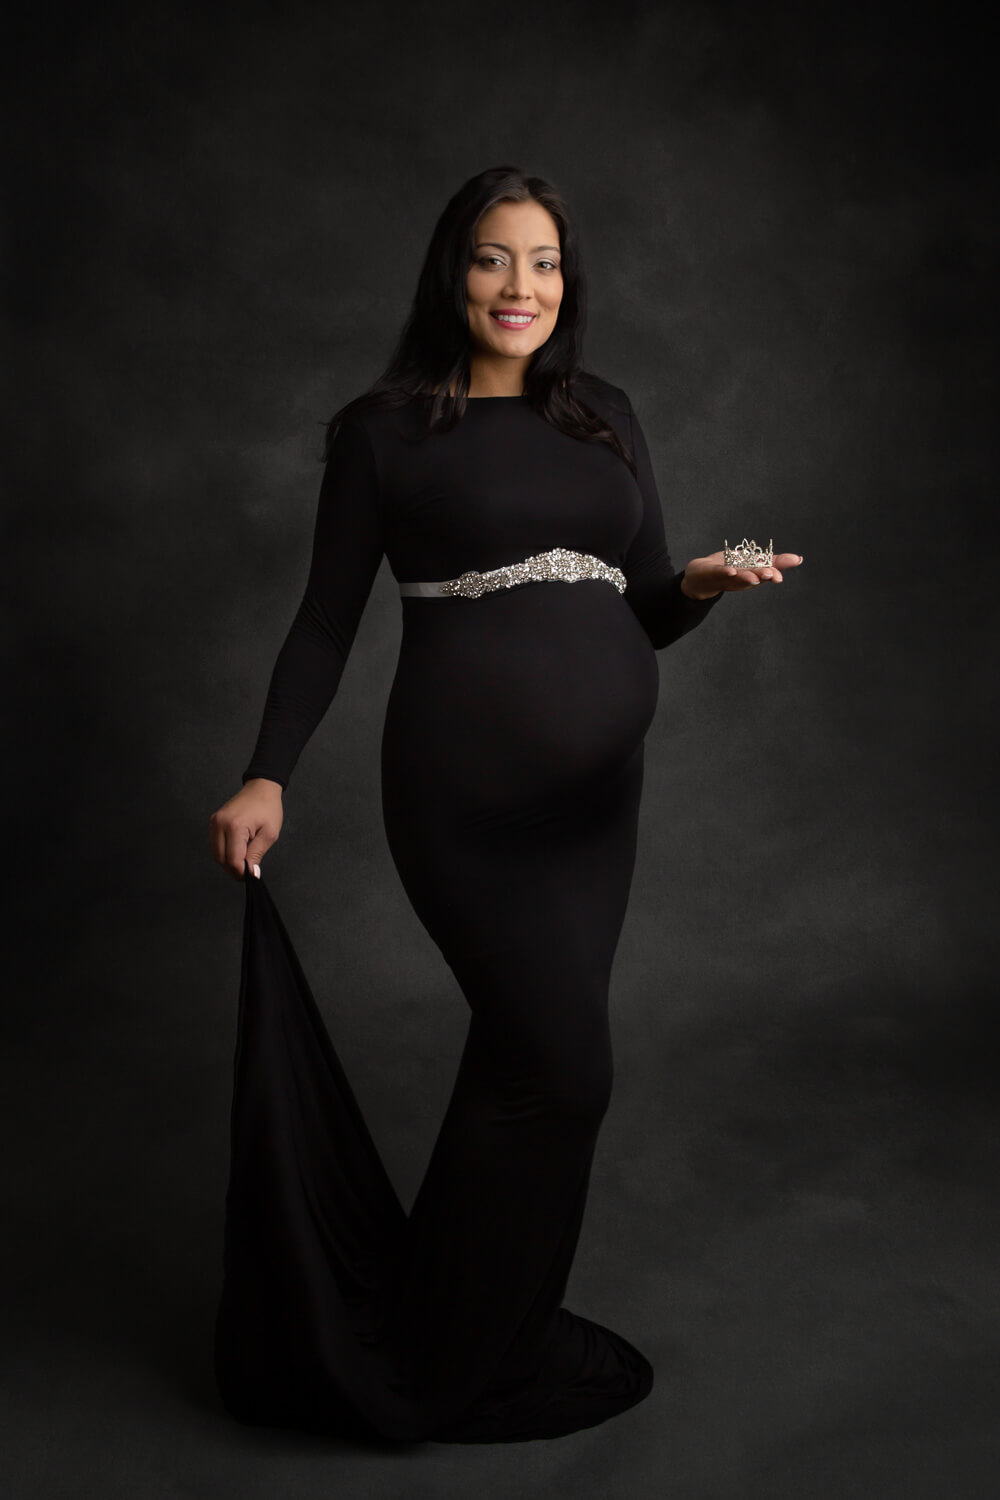 pregnant woman posing for maternity photo in black gown holding tiara